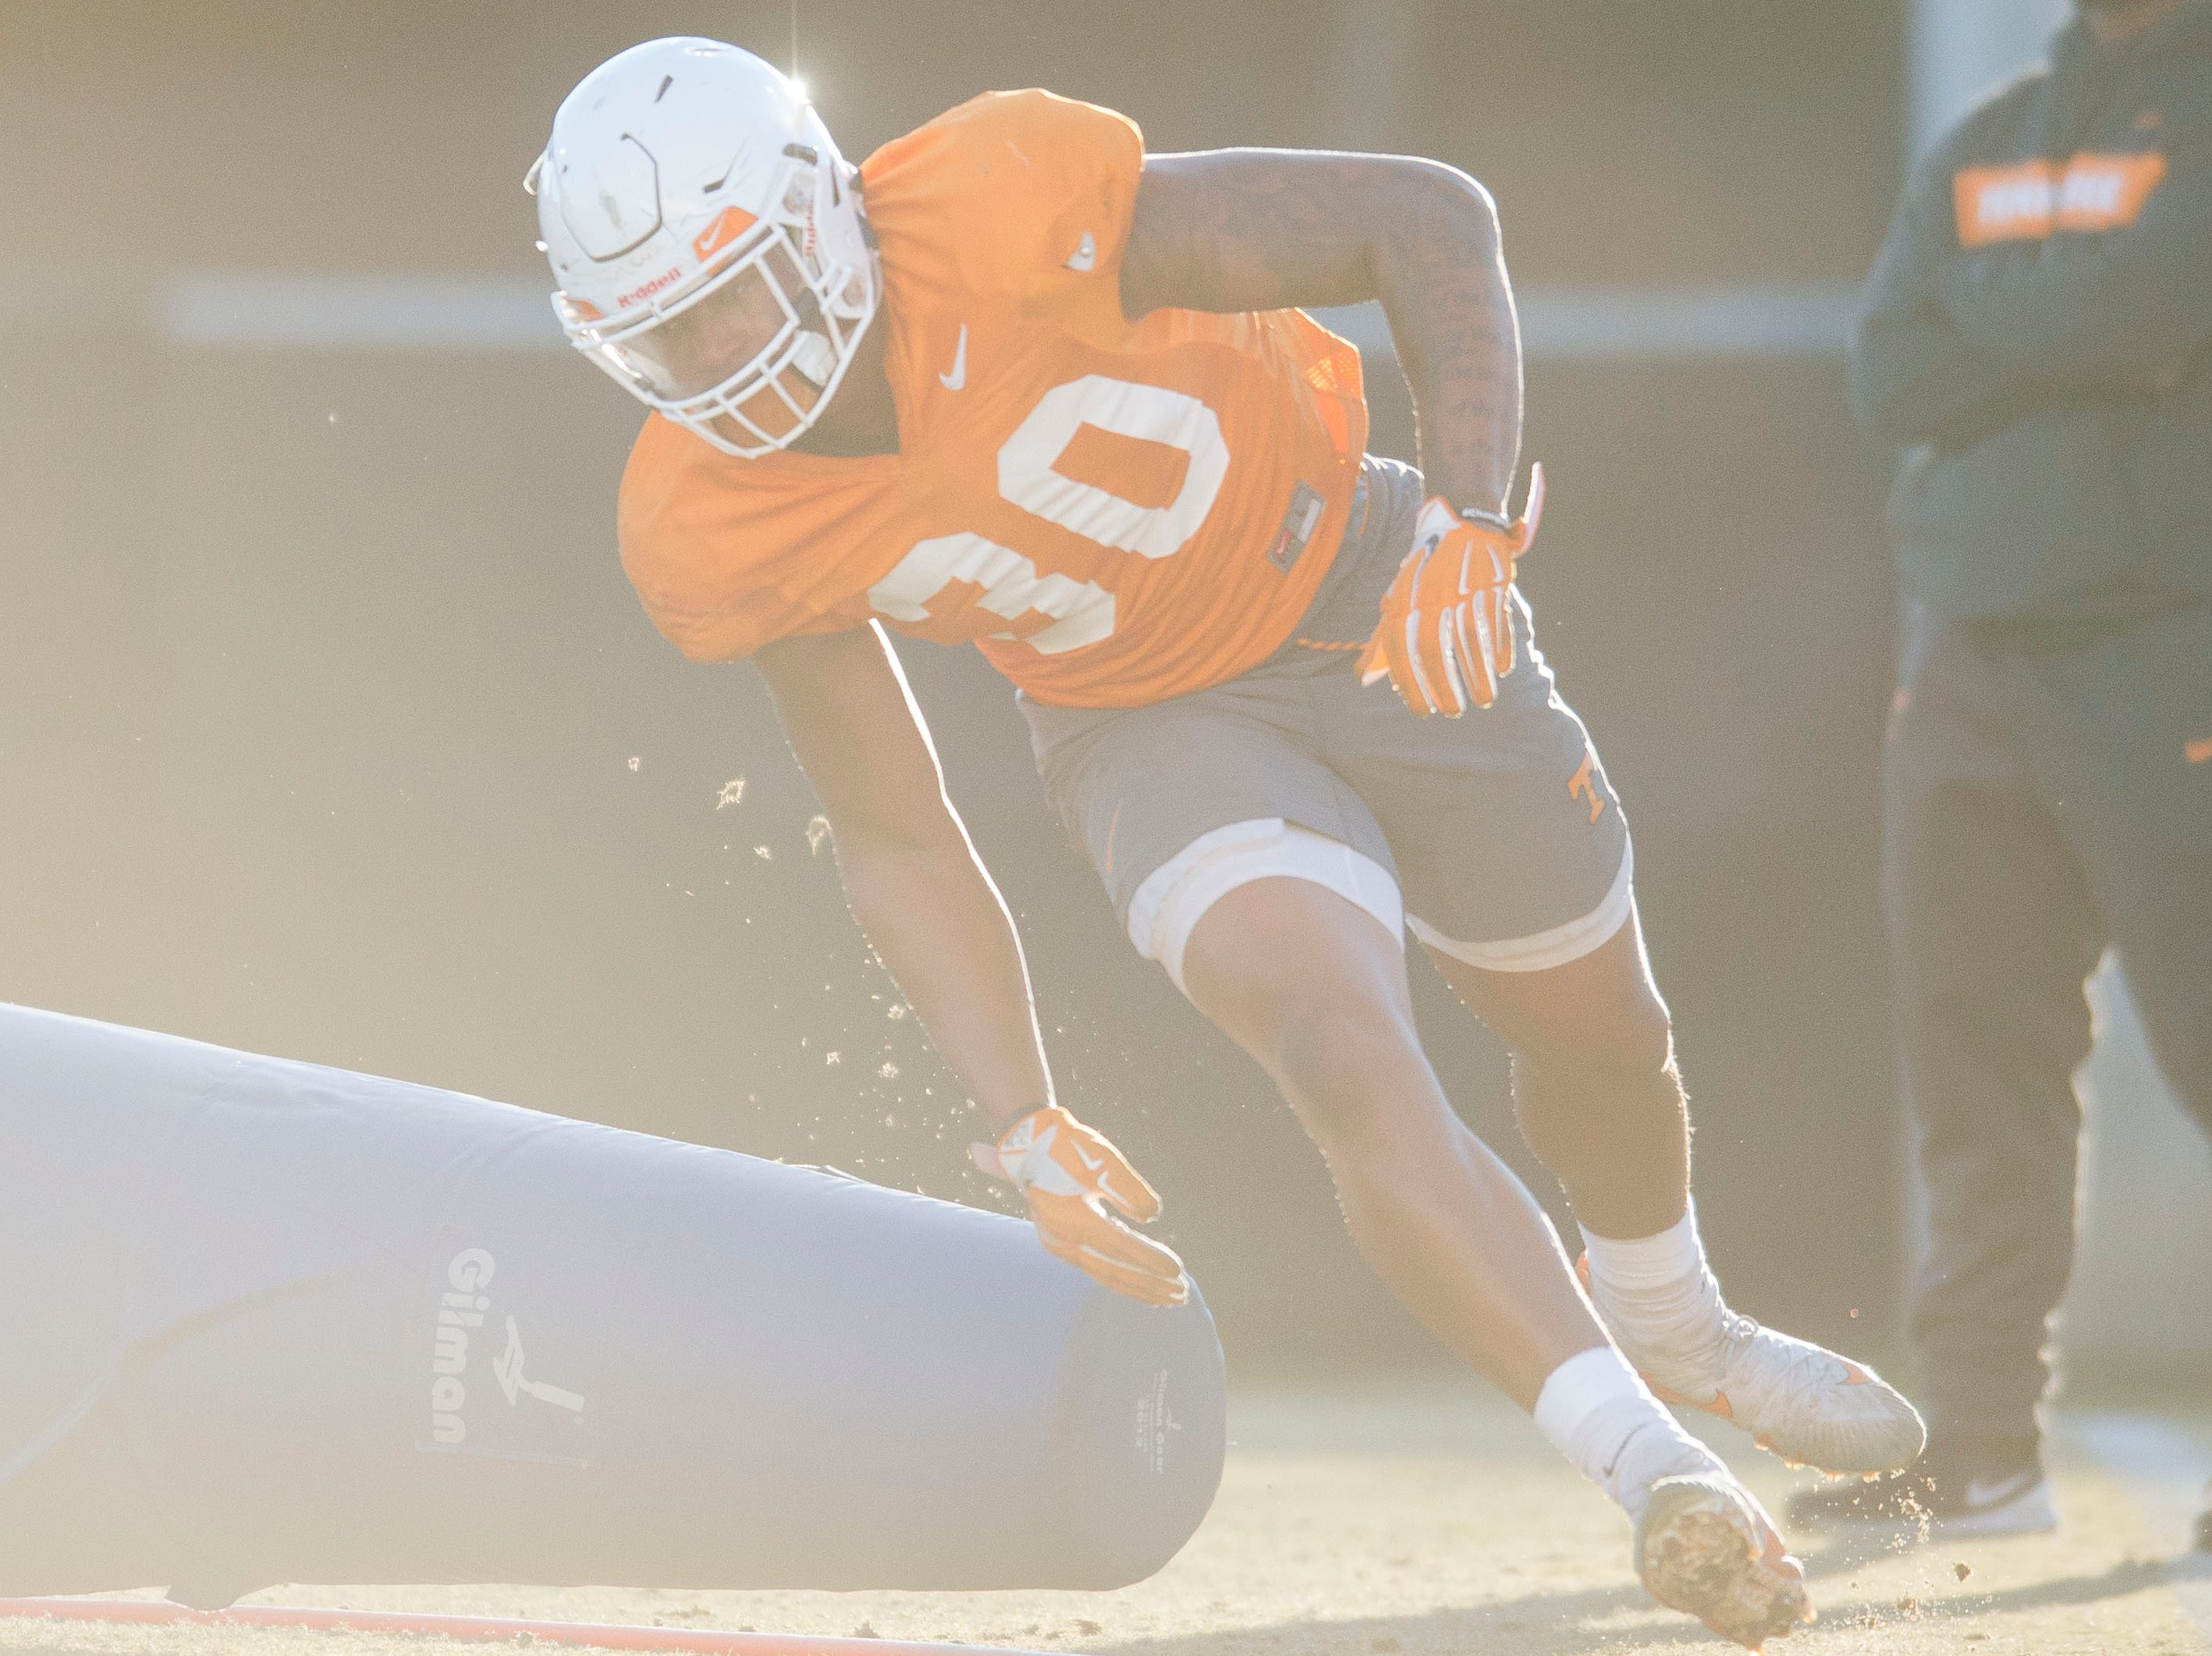 Tennessee linebacker Austin Smith (30) participates in a drill during Vols football practice Wednesday, Nov. 21, 2018.